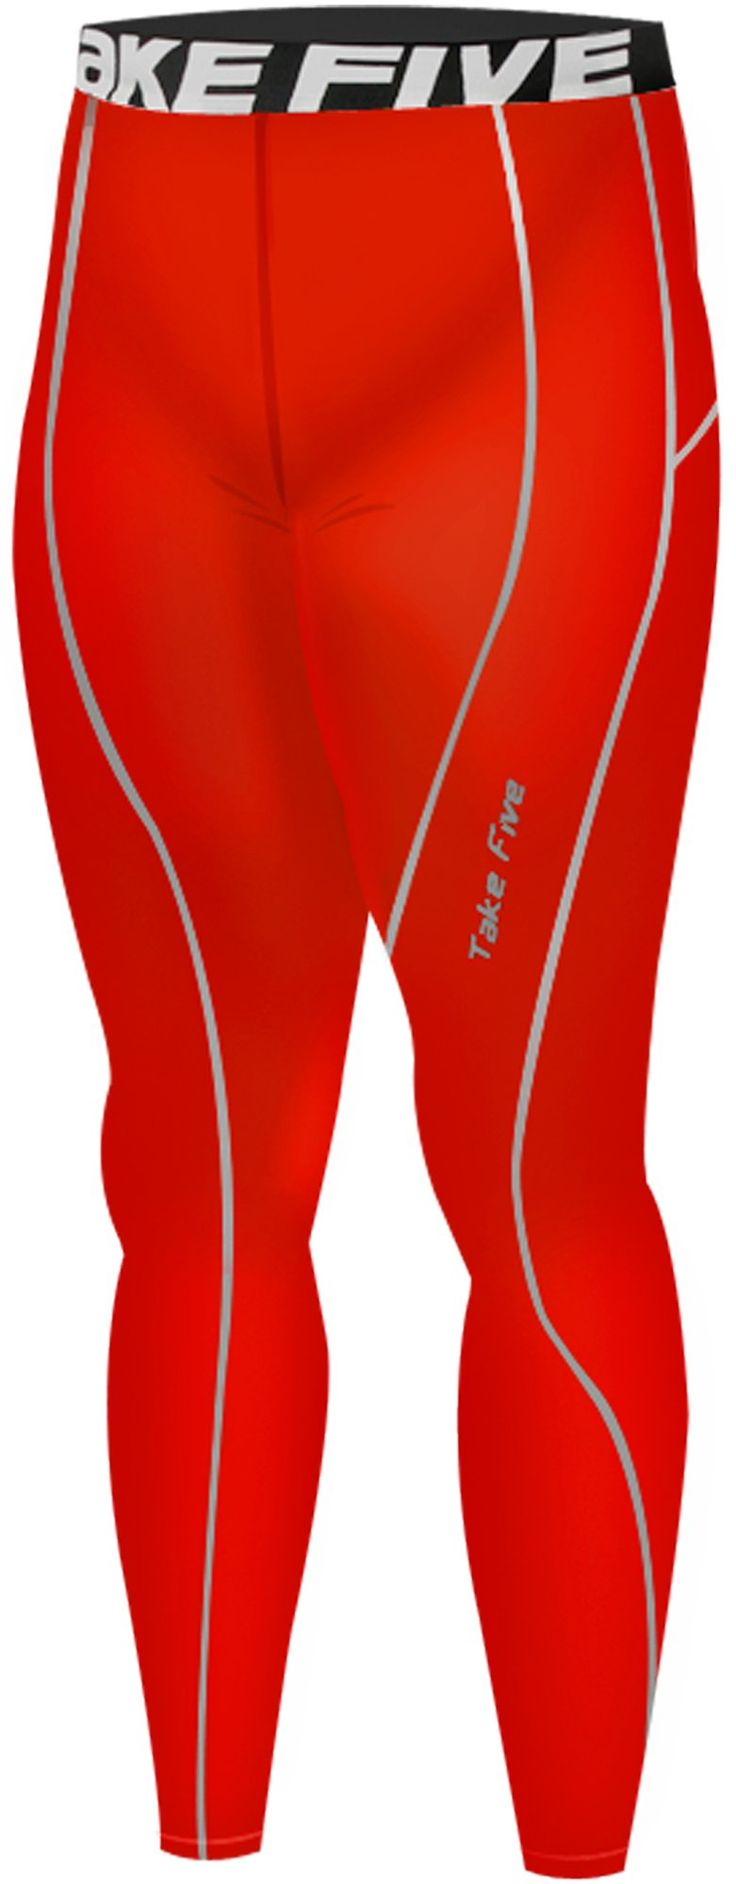 New 053 Winter Warm Skin Tights Compression Base Layer Red Running Pants S-2xl (S). Men's long Pants compression Tights made using Take Five technology. UVA/UVB Protection - Take Five compressoin protects your skin from UVA/UVB radiation during your outdoor workout. Great for skiing, snowboarding, training, competing, and all weather sports and activities. Machine washable.